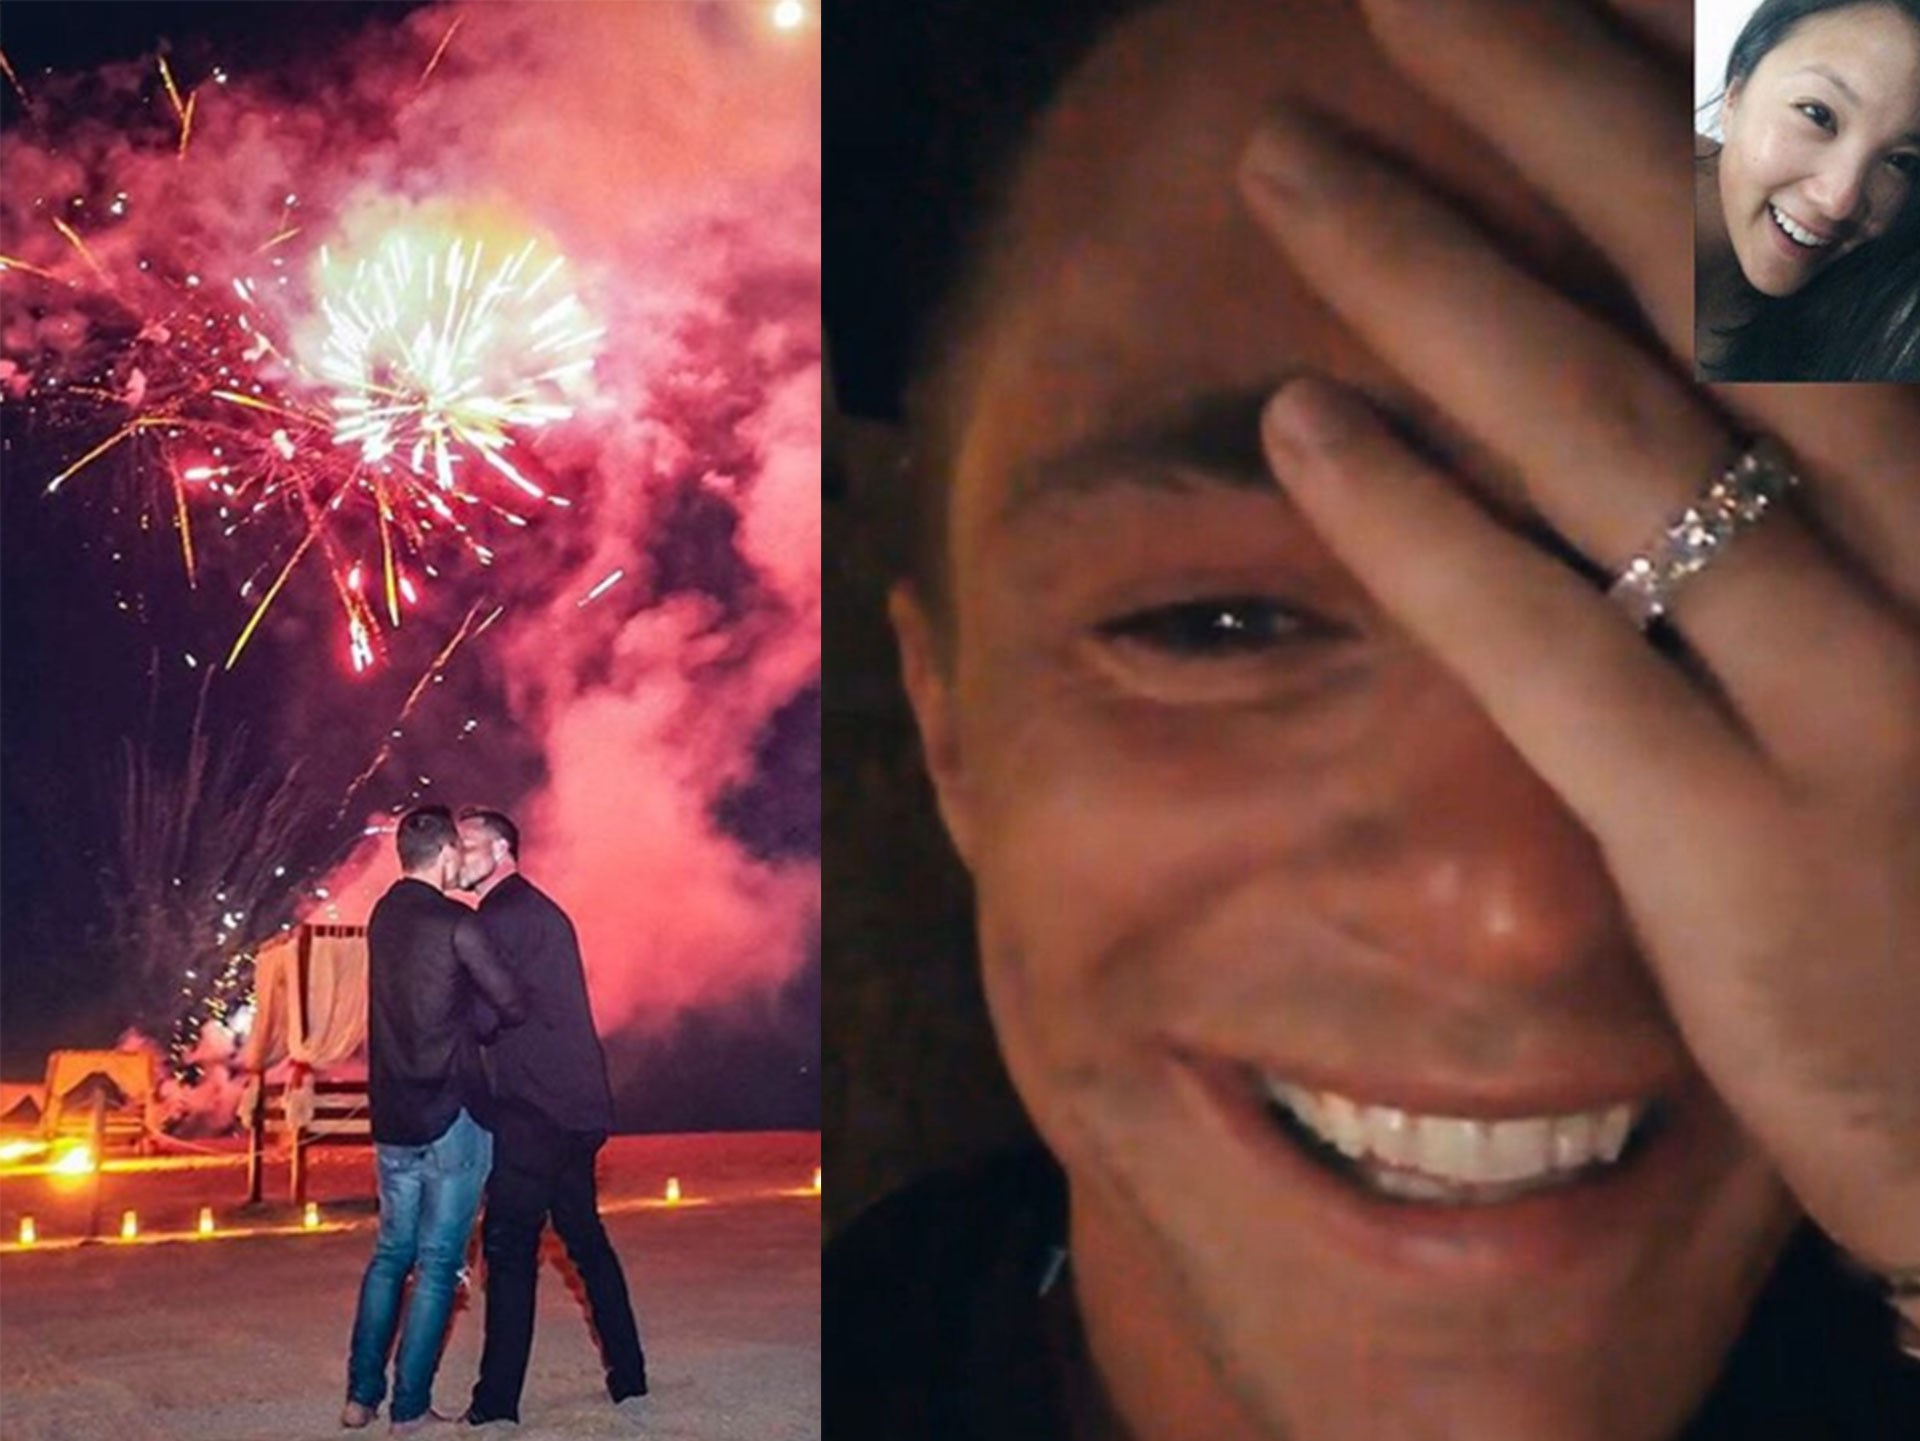 *Teen Wolf* heart-throb Colton Haynes just got engaged to his boyfriend Jeff Leatham while on vacay in Mexico. Jeff treated Colton to fireworks, and an outdoor movie. Colton later showed off his AMAZING sparkler to his best friend Ally Maki on Facetime. <3